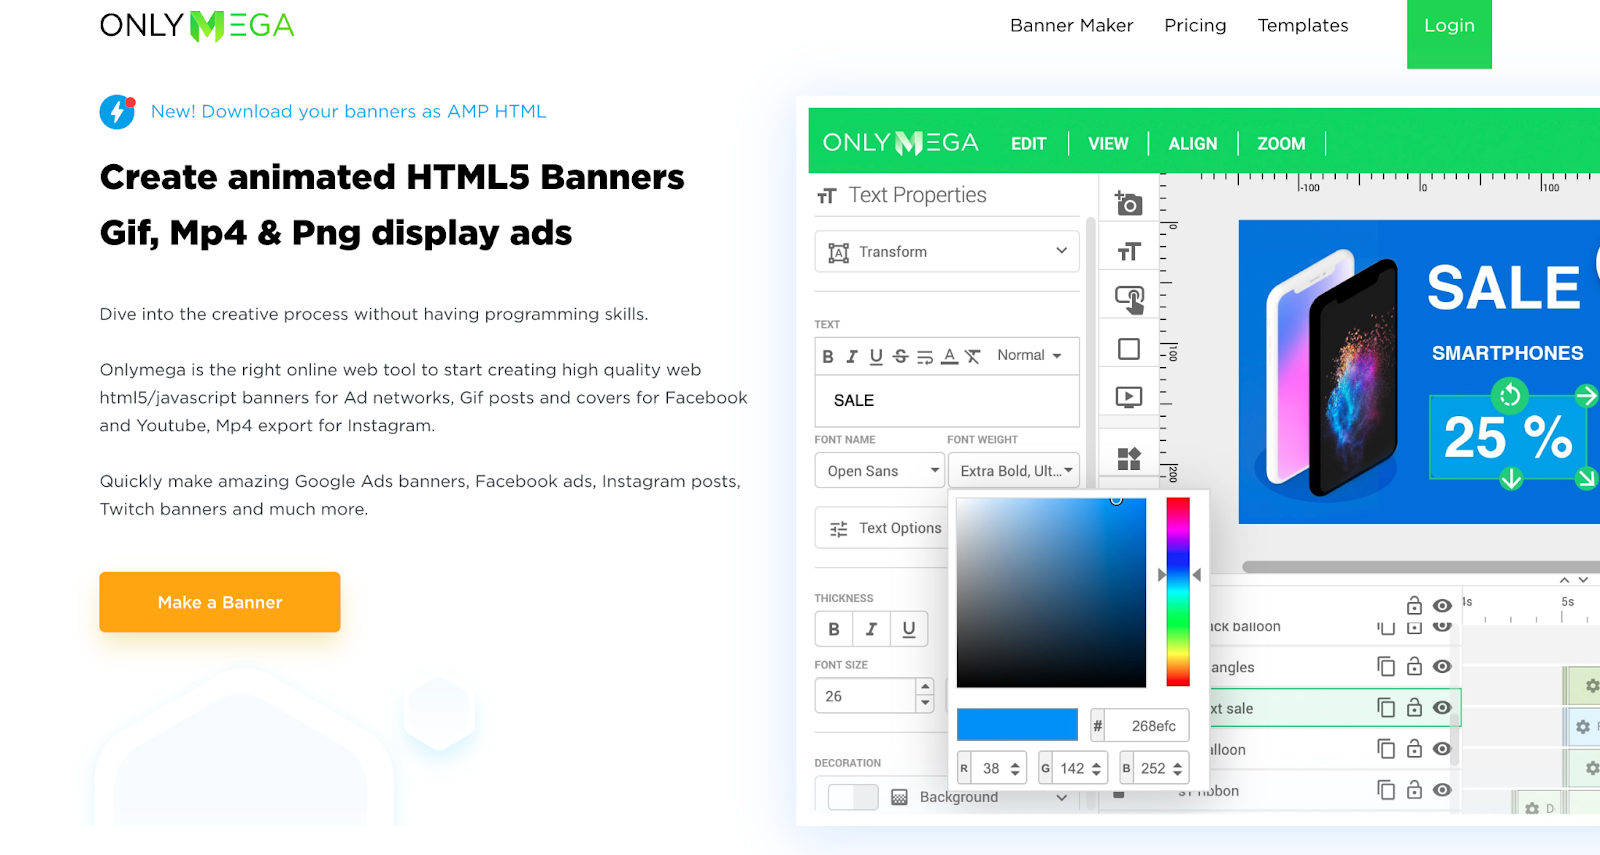 HTML5 tool for use with various ad formats